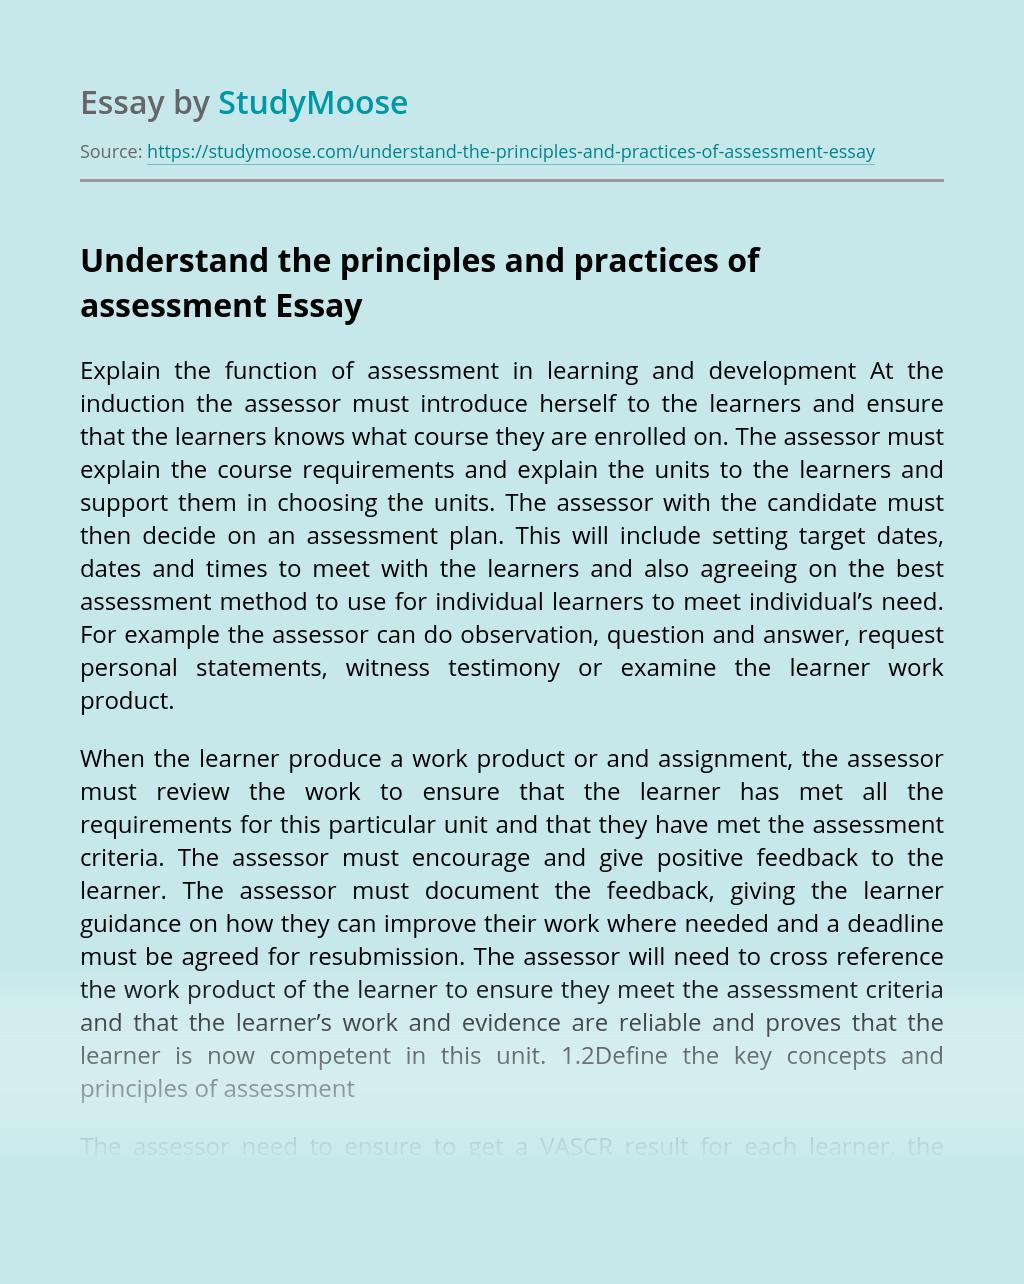 Understand the principles and practices of assessment